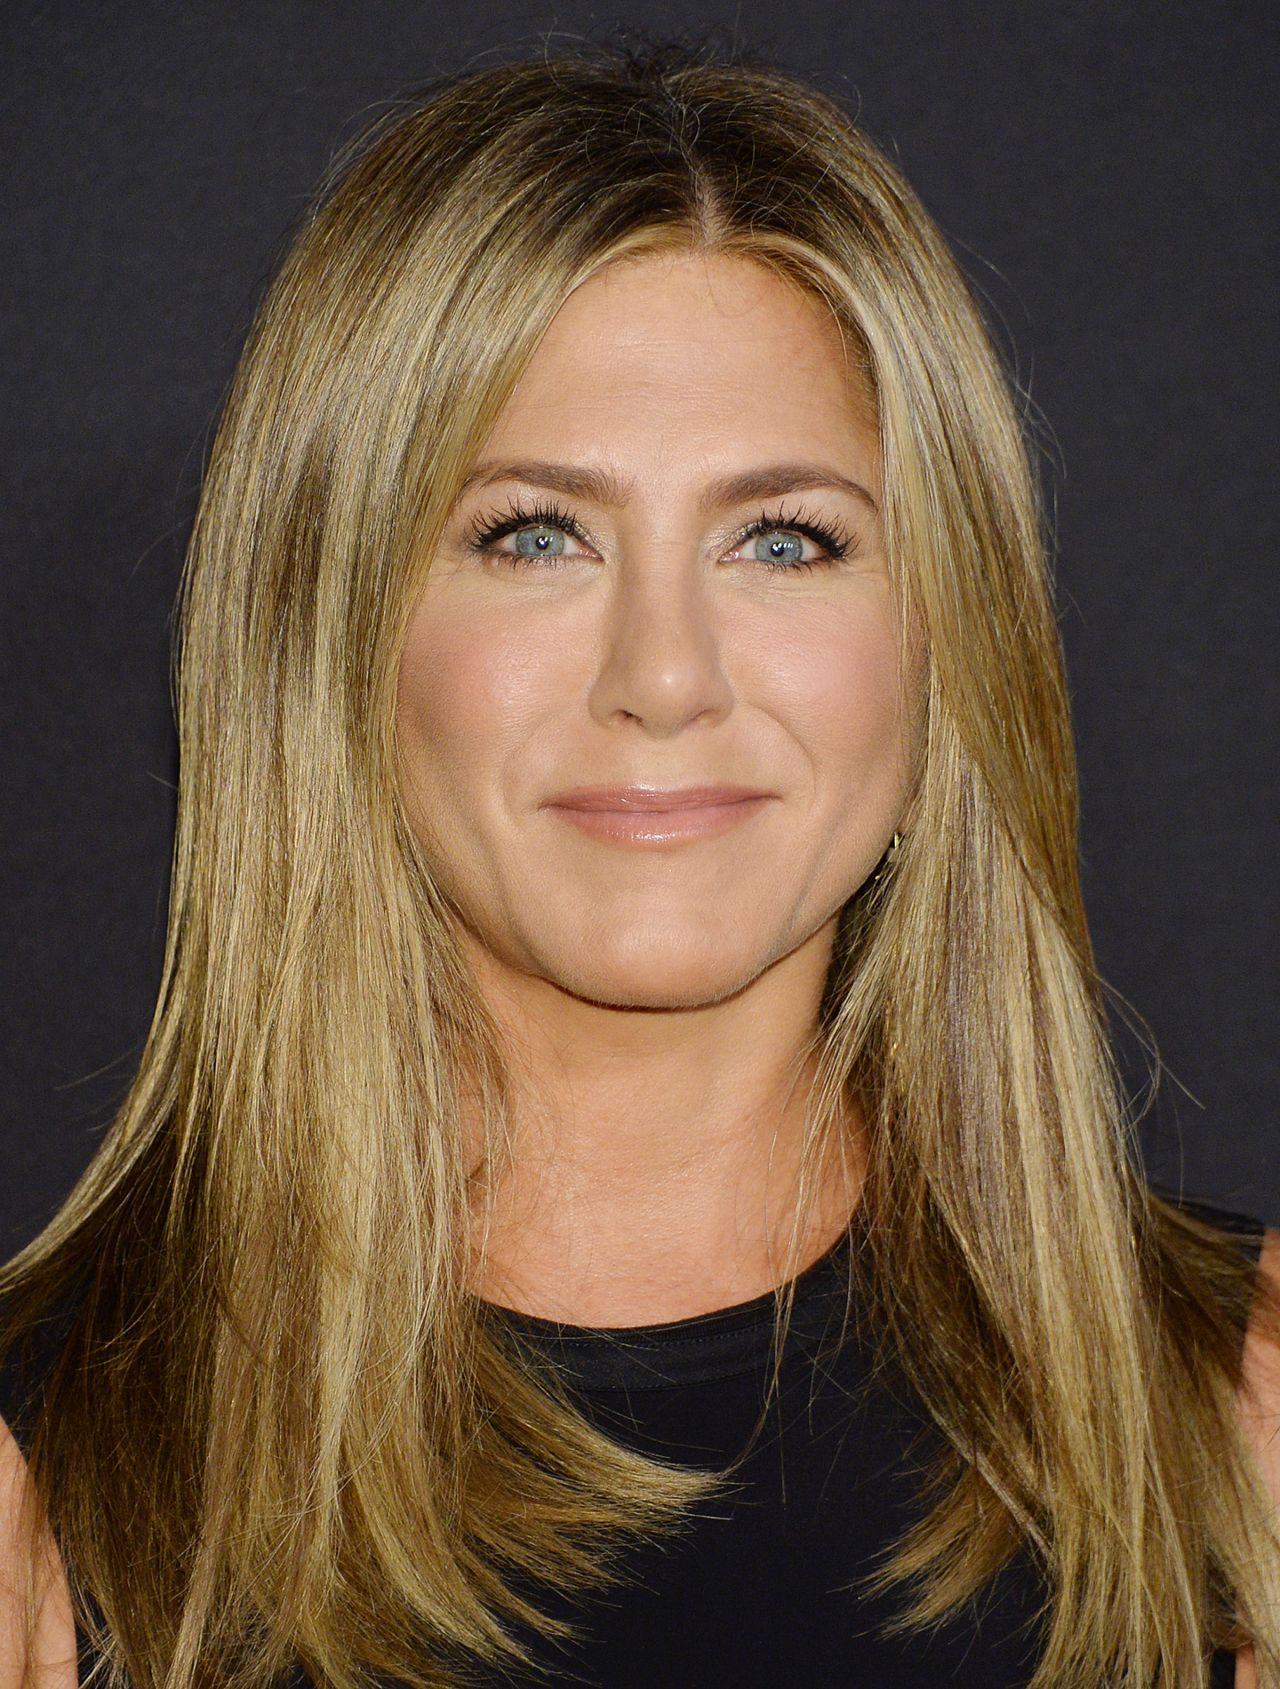 Jennifer Aniston Latest Photos - CelebMafia Jennifer Aniston